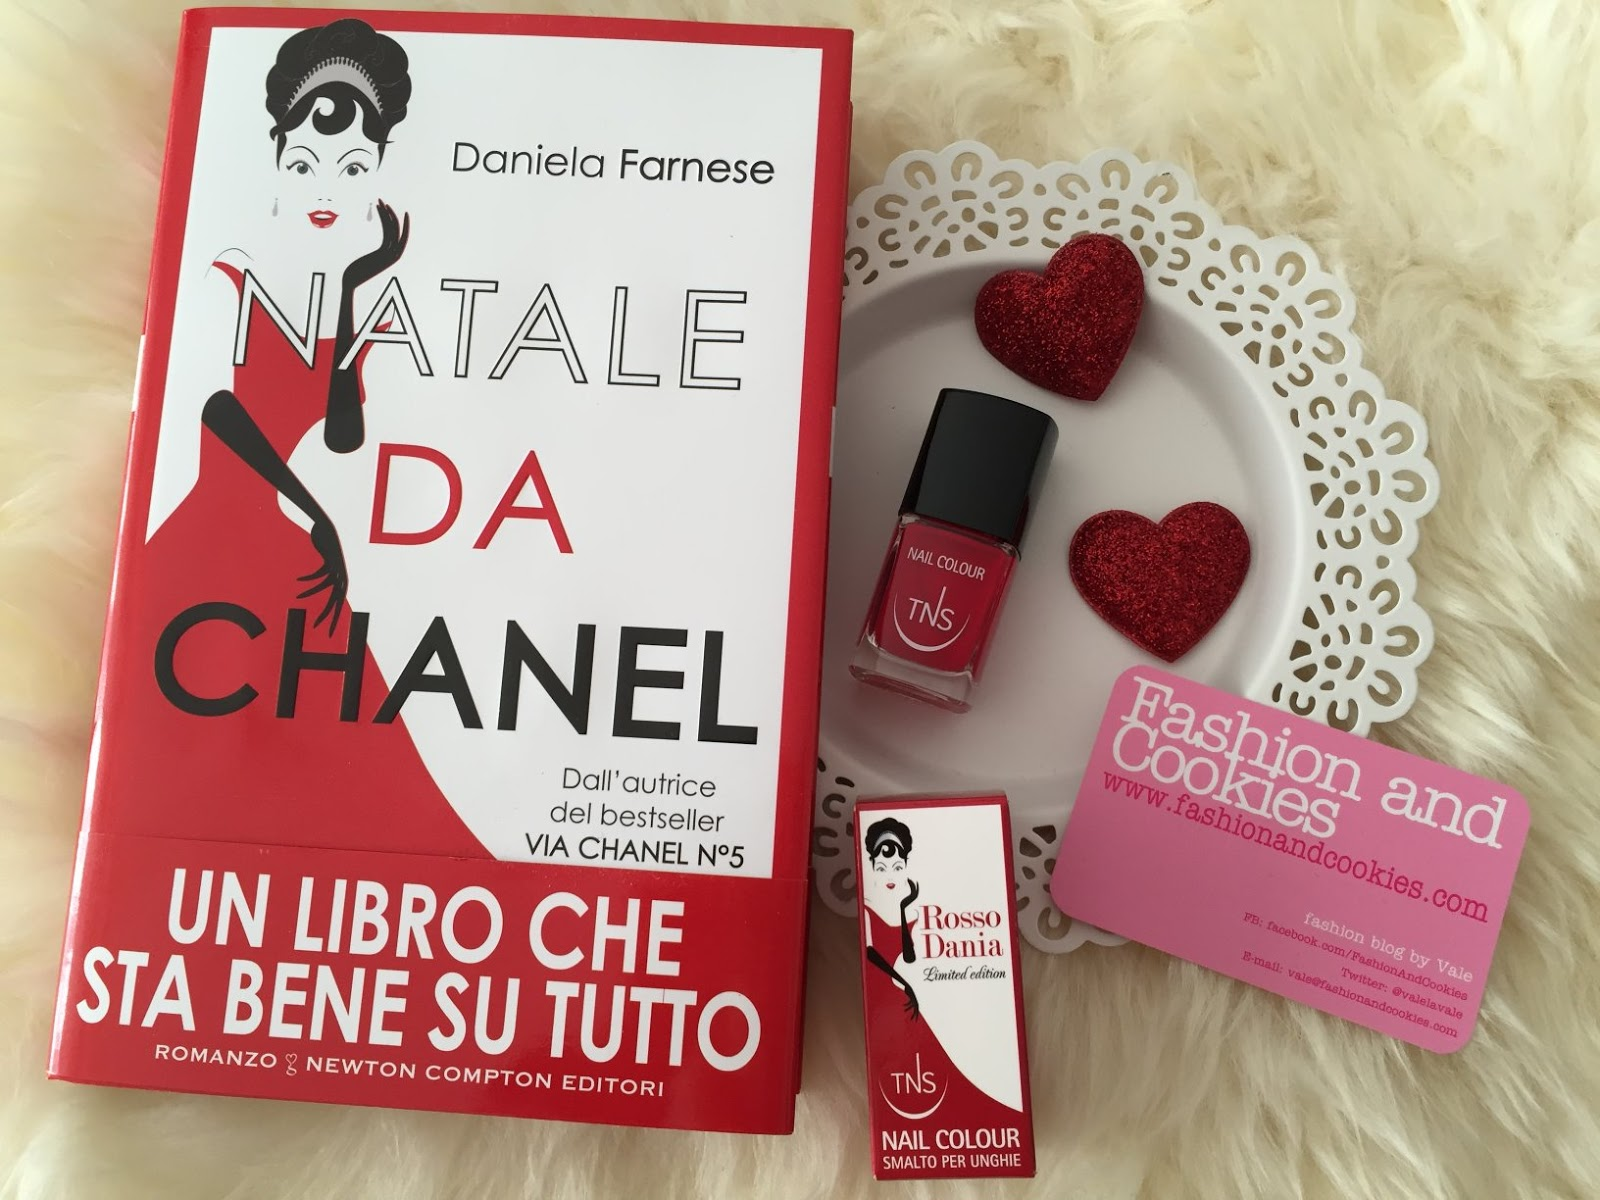 TNS Cosmetics Rosso Dania nail polish, Daniela Farnese Natale da Chanel on Fashion and Cookies fashion and beauty blog